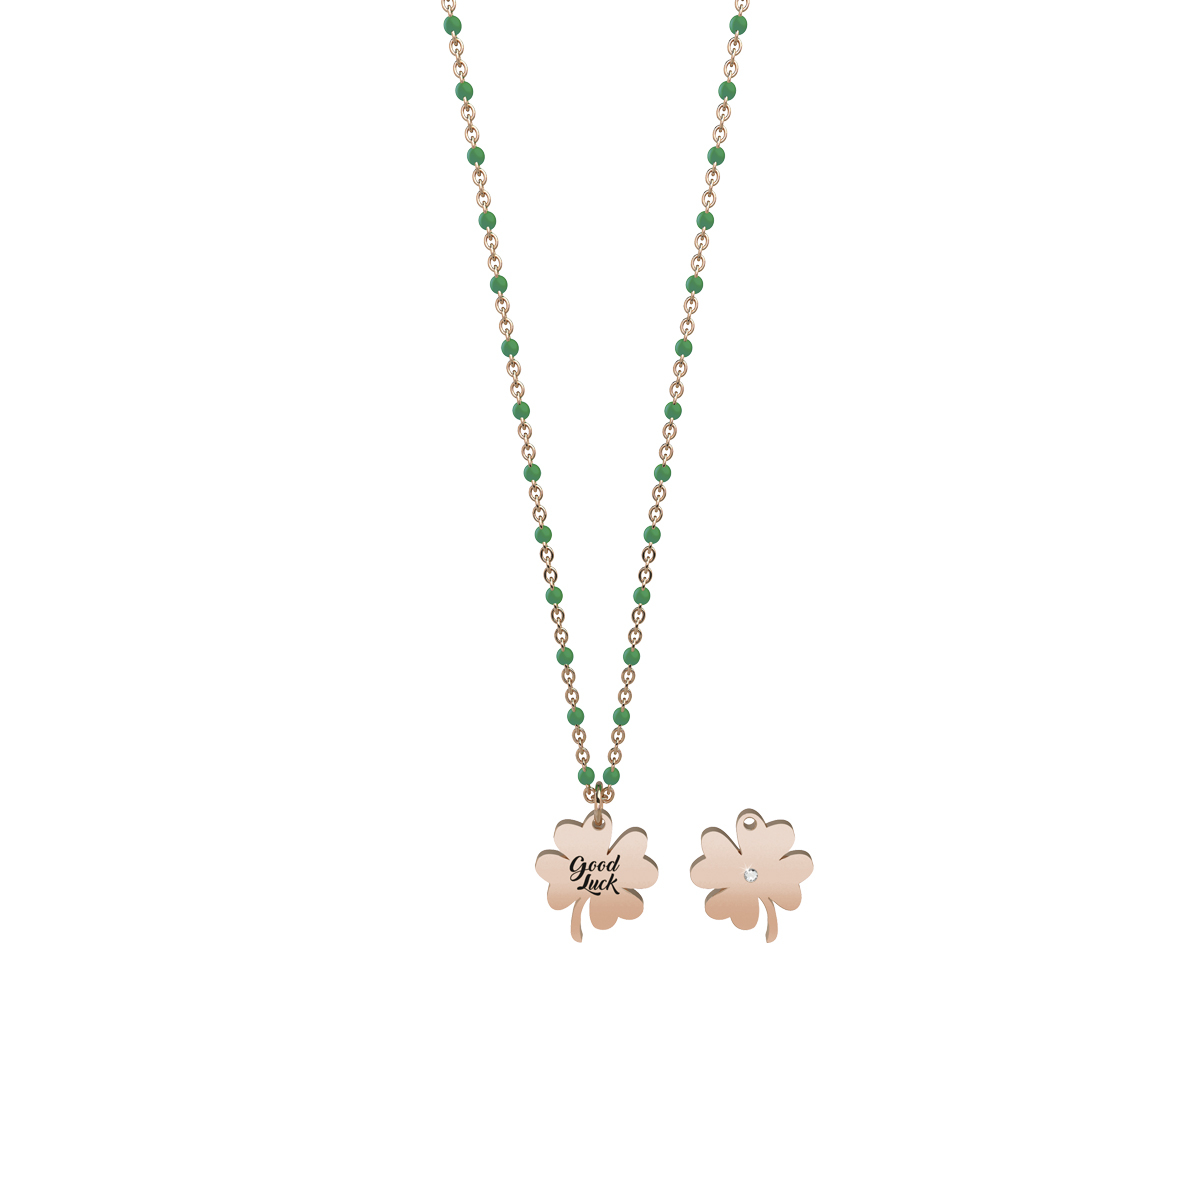 Kidult collana Nature donna